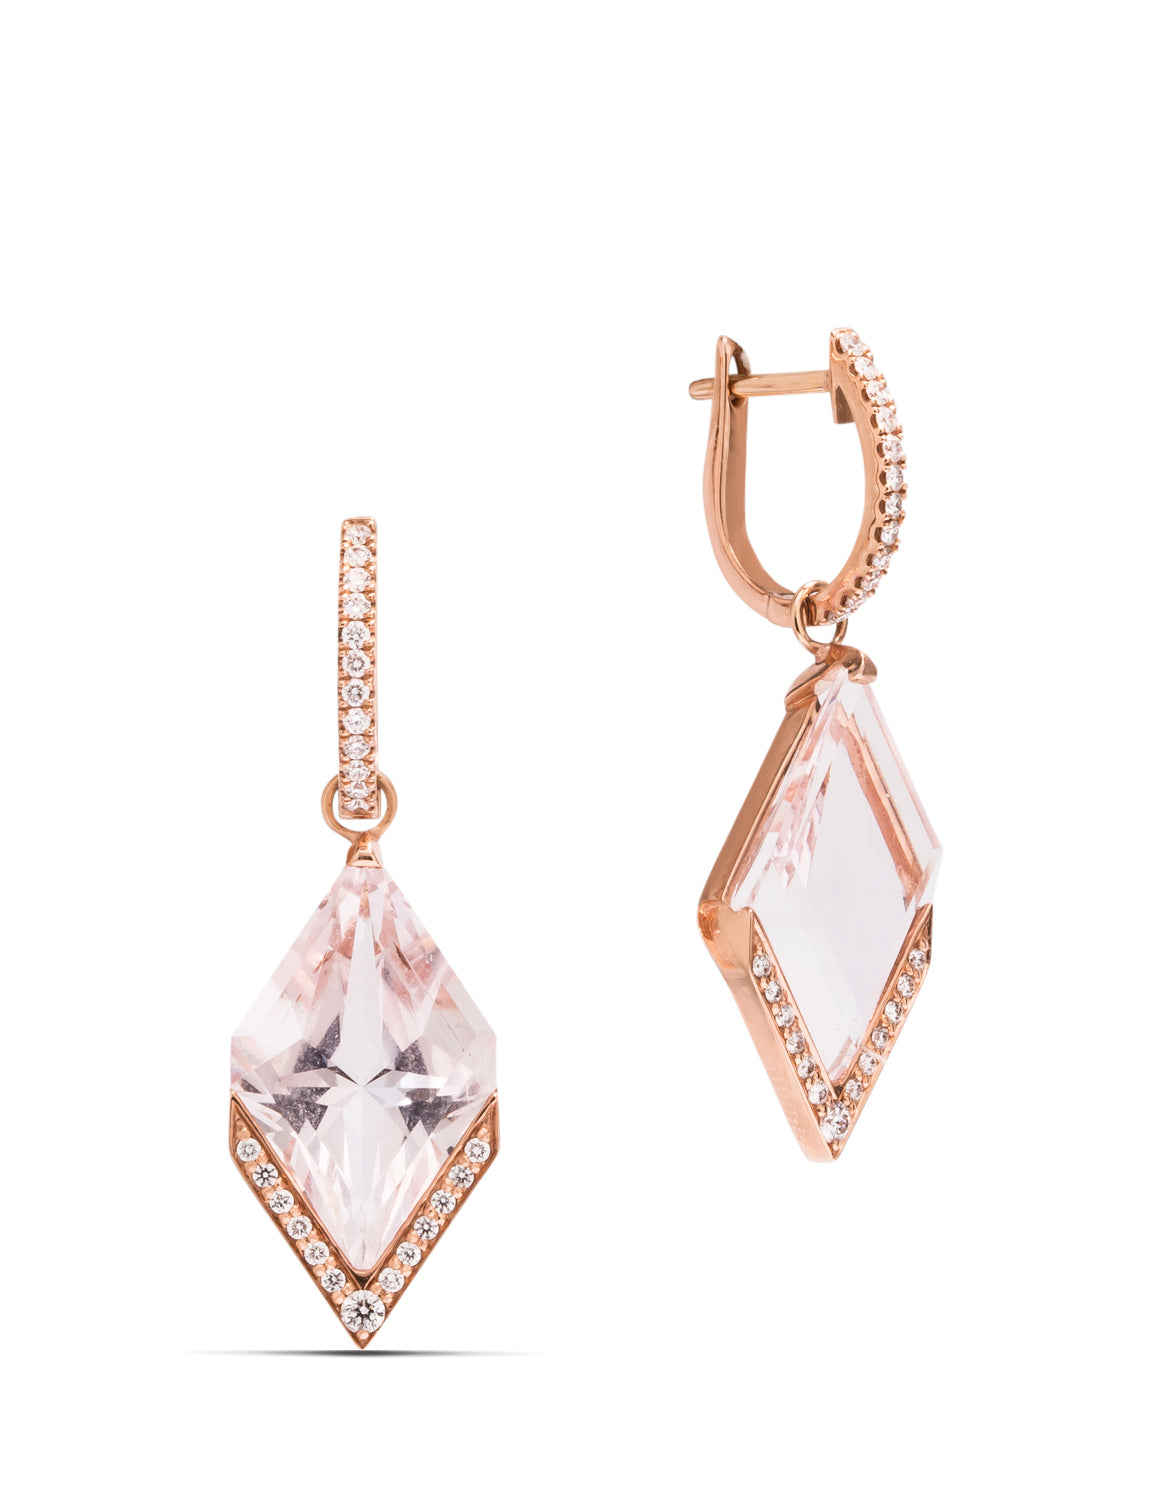 Morganite and Diamond Dangle Earrings - Charles Koll Jewellers